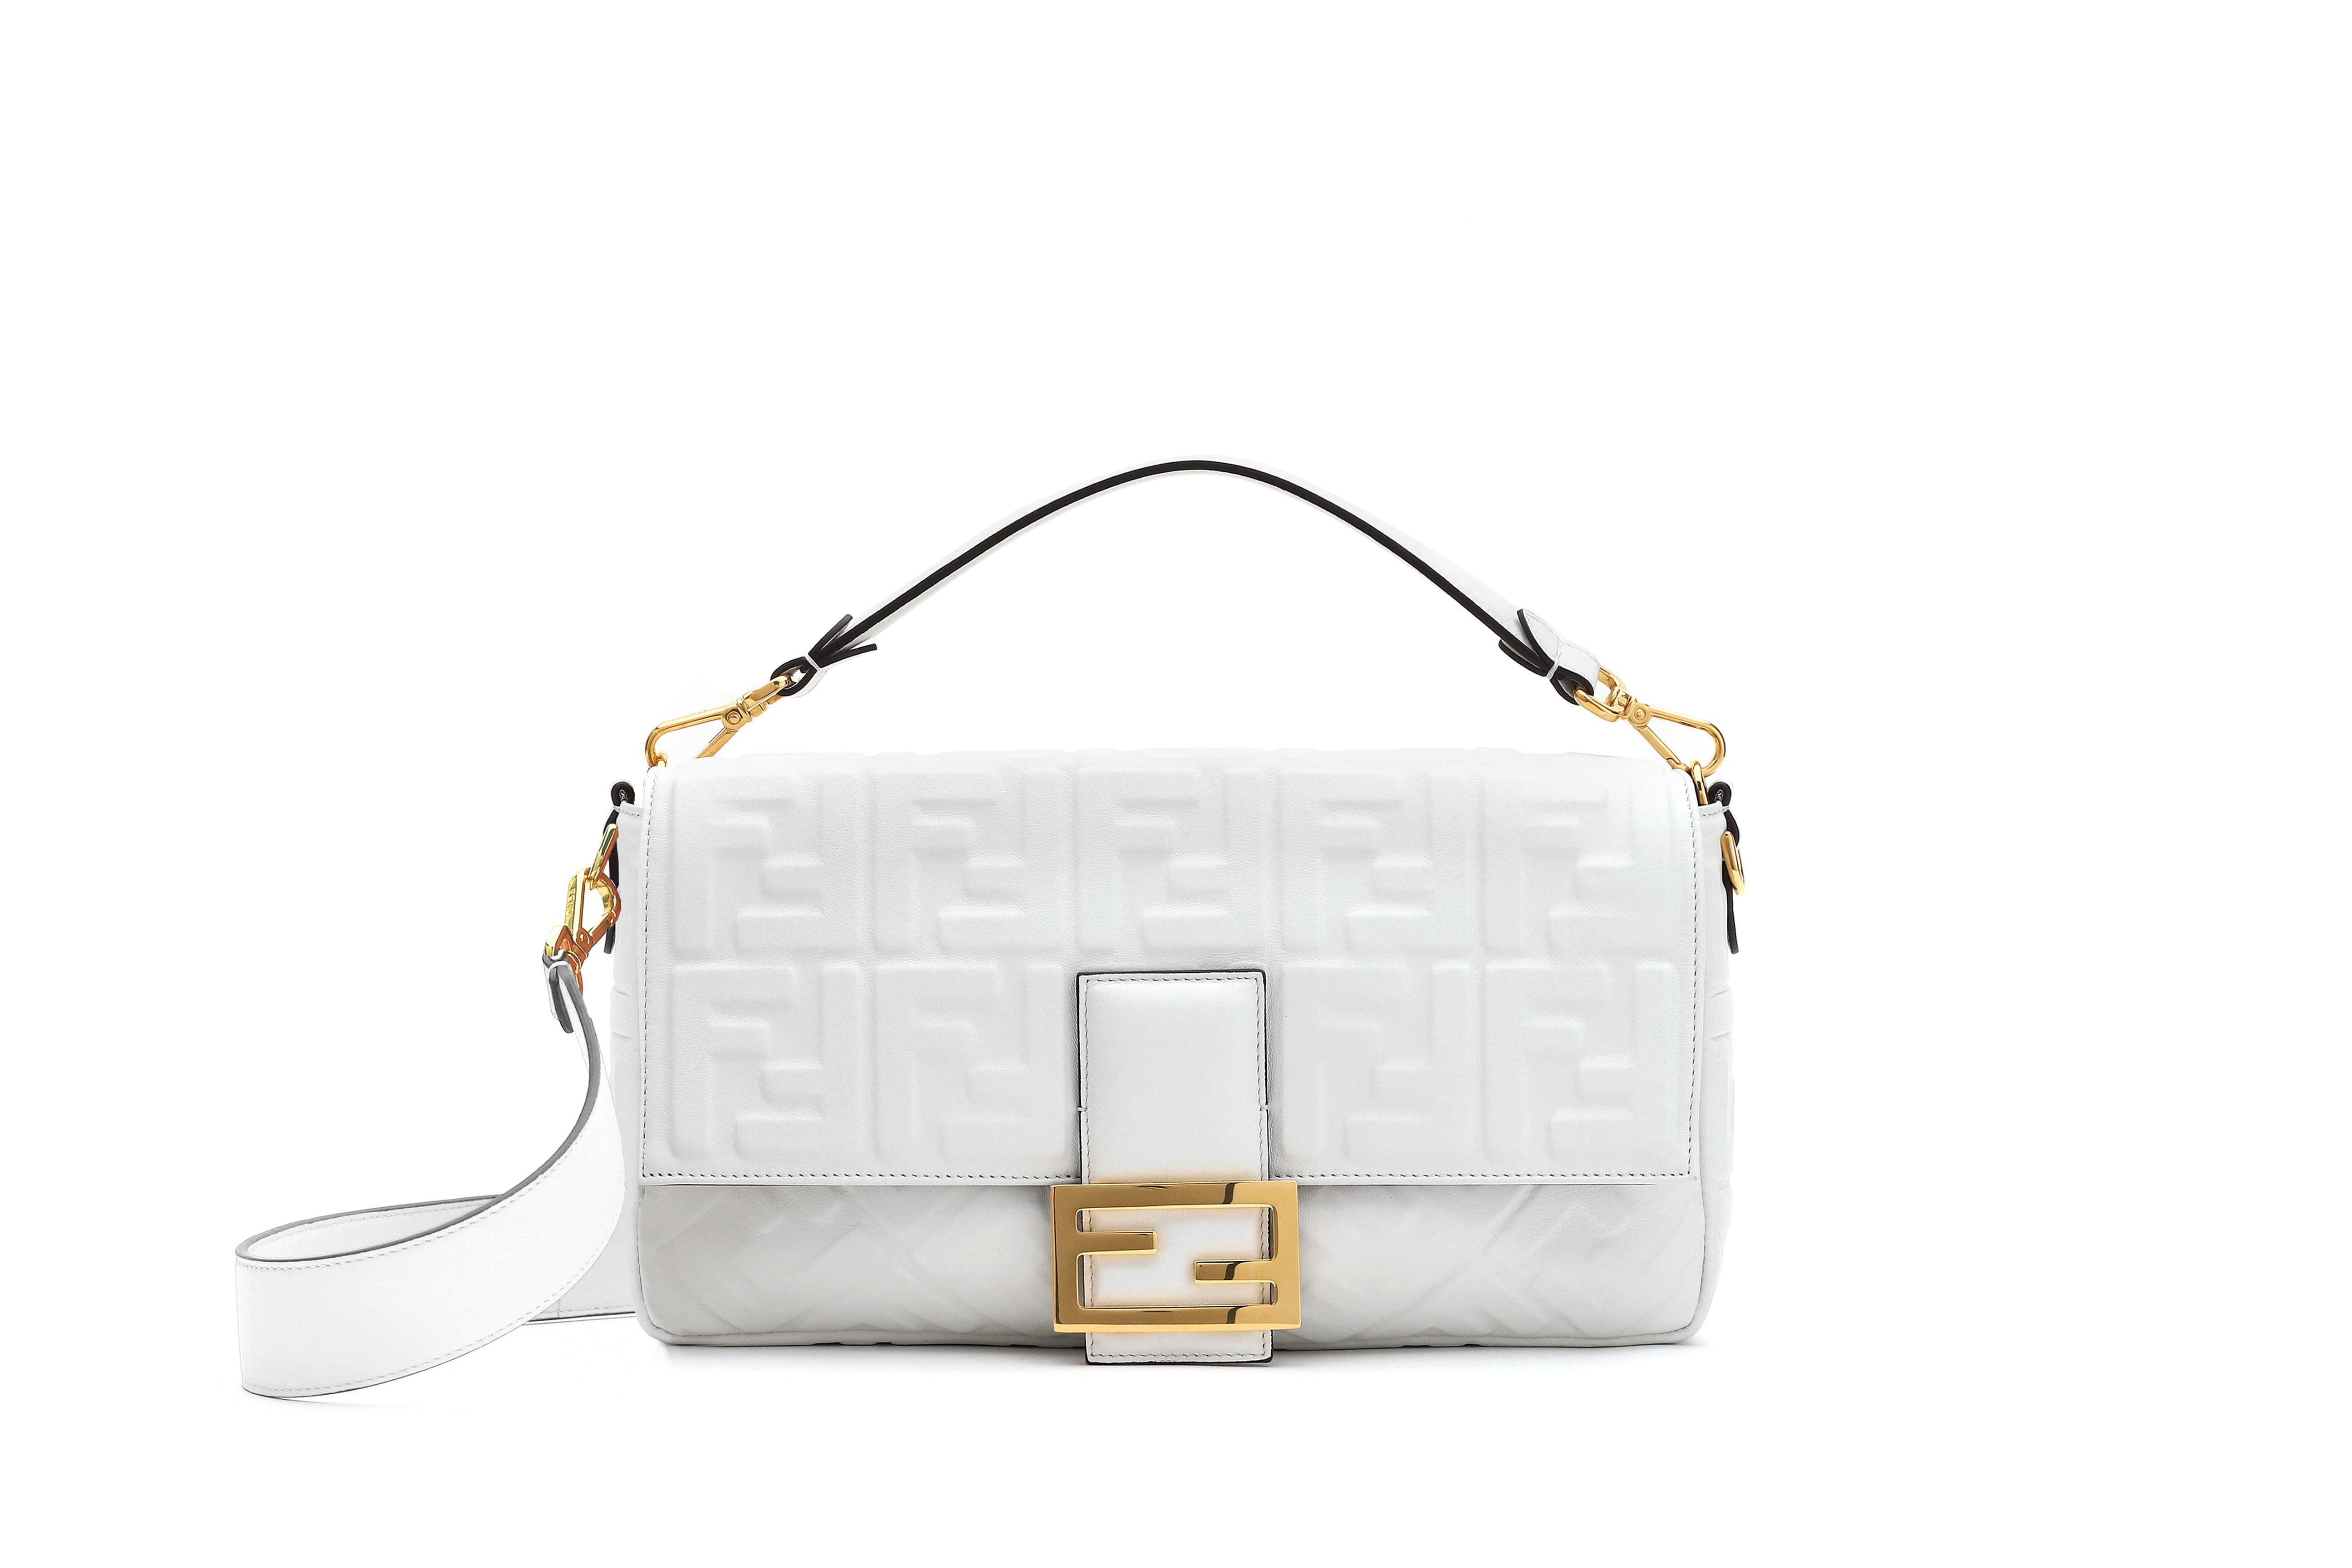 a75fef99cb68 Fendi s Baguette bag comes in two different sizes.